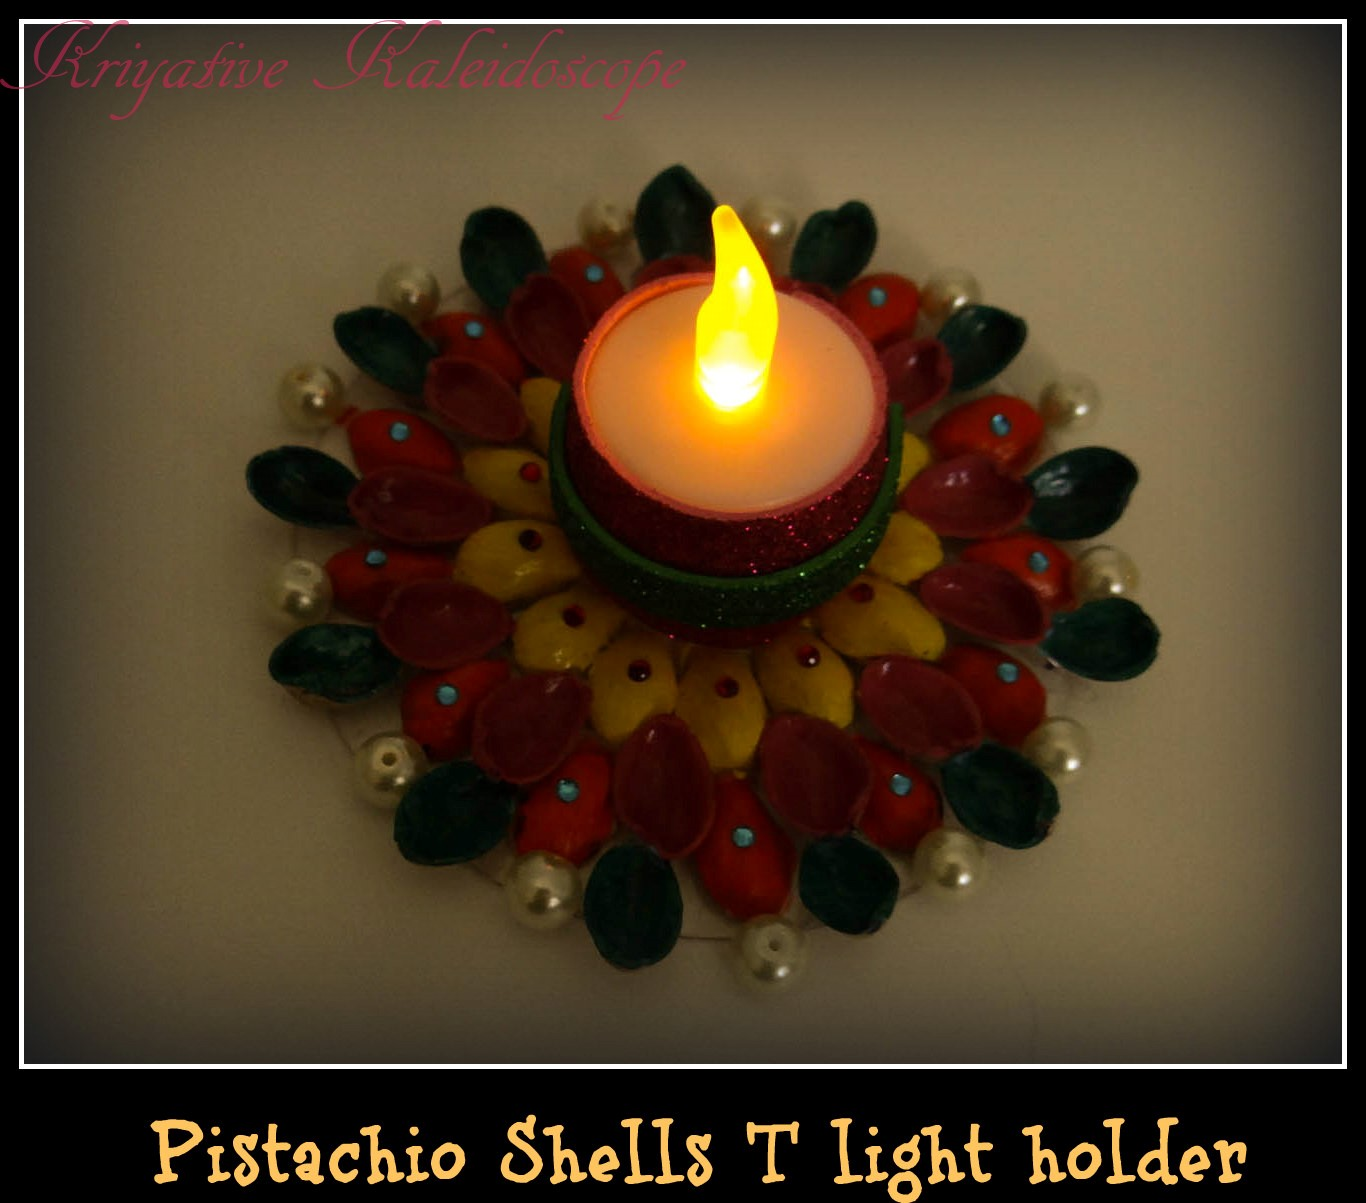 Kriya Tive Kaleidoscope T Light Holder Using Pistachio Shells